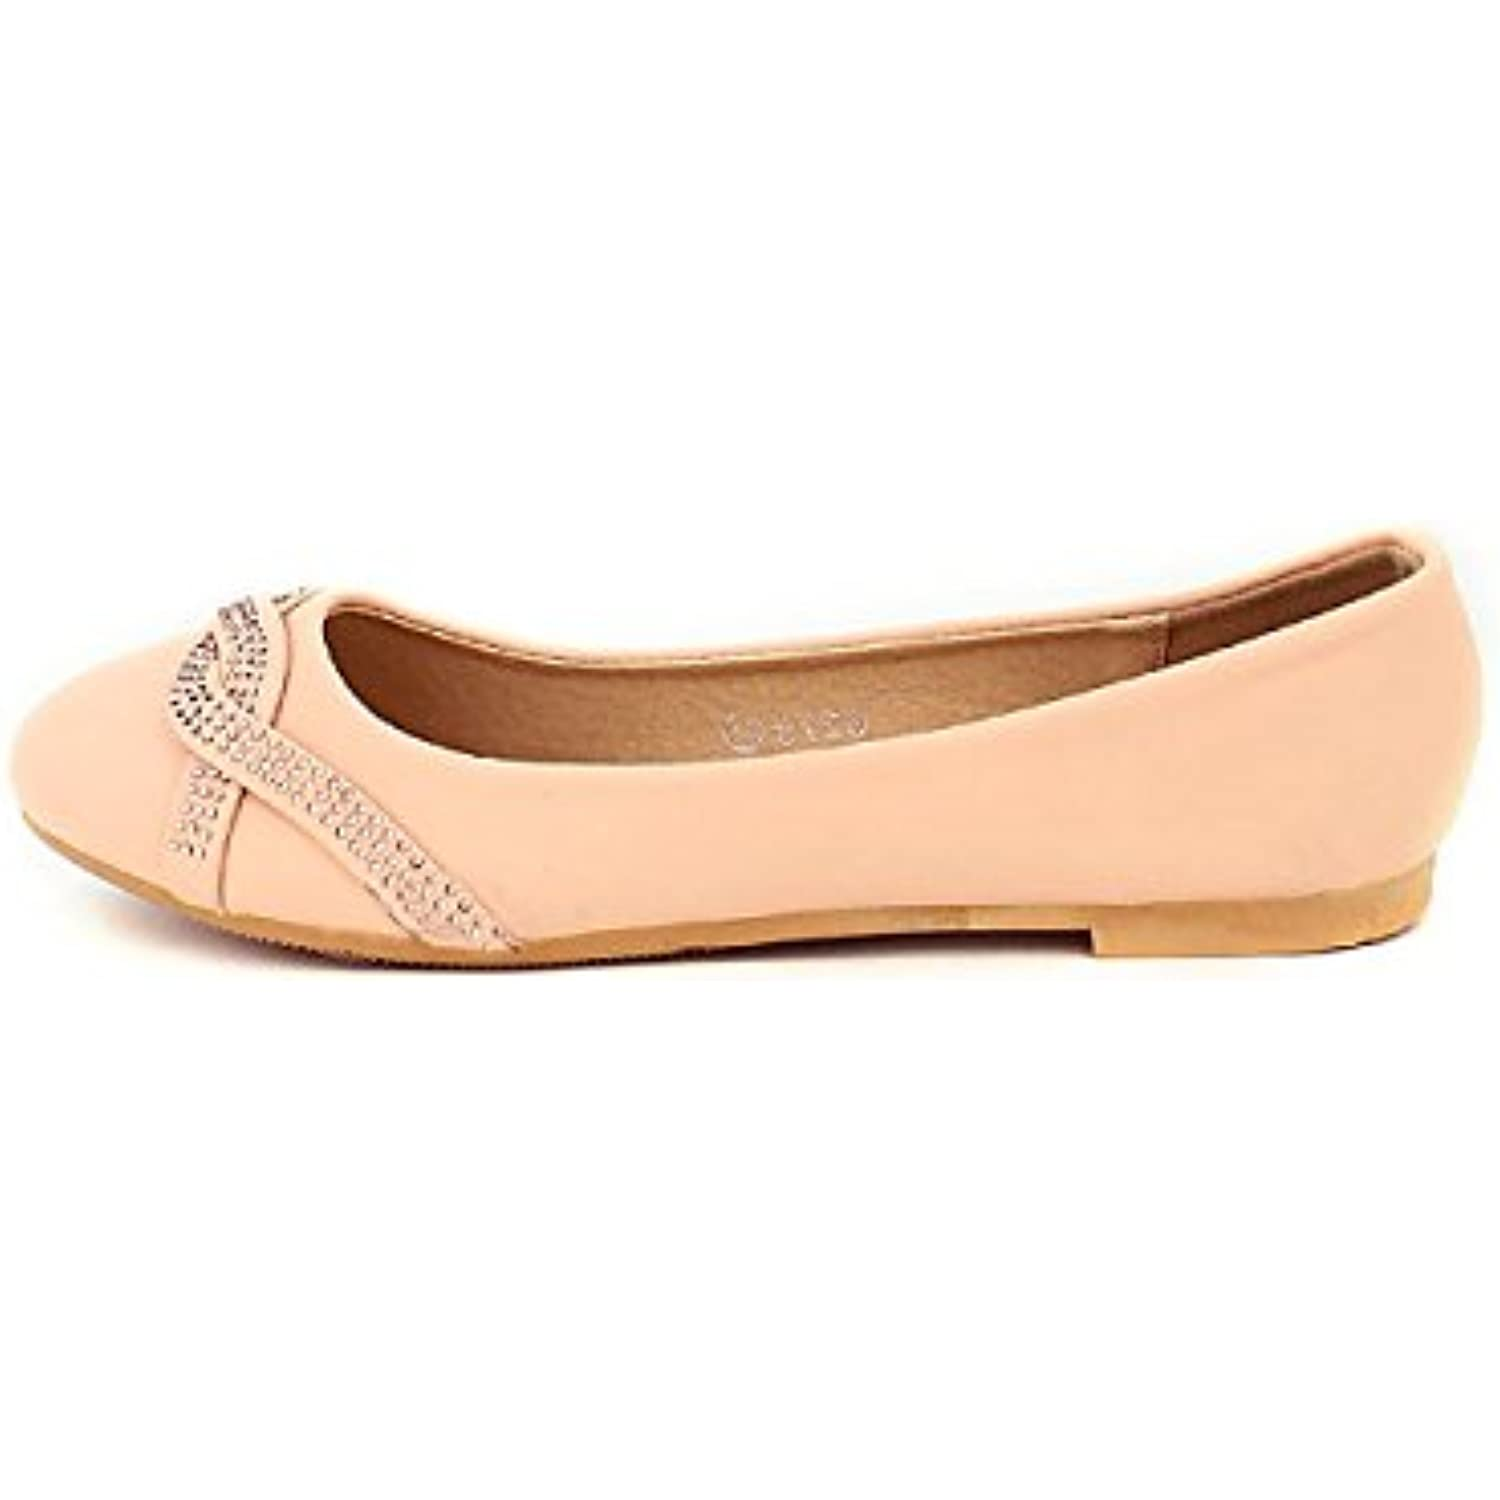 Chaussures Me Rose Ballerine Cendriyon Eacute; Poudr Cink xZwpnP